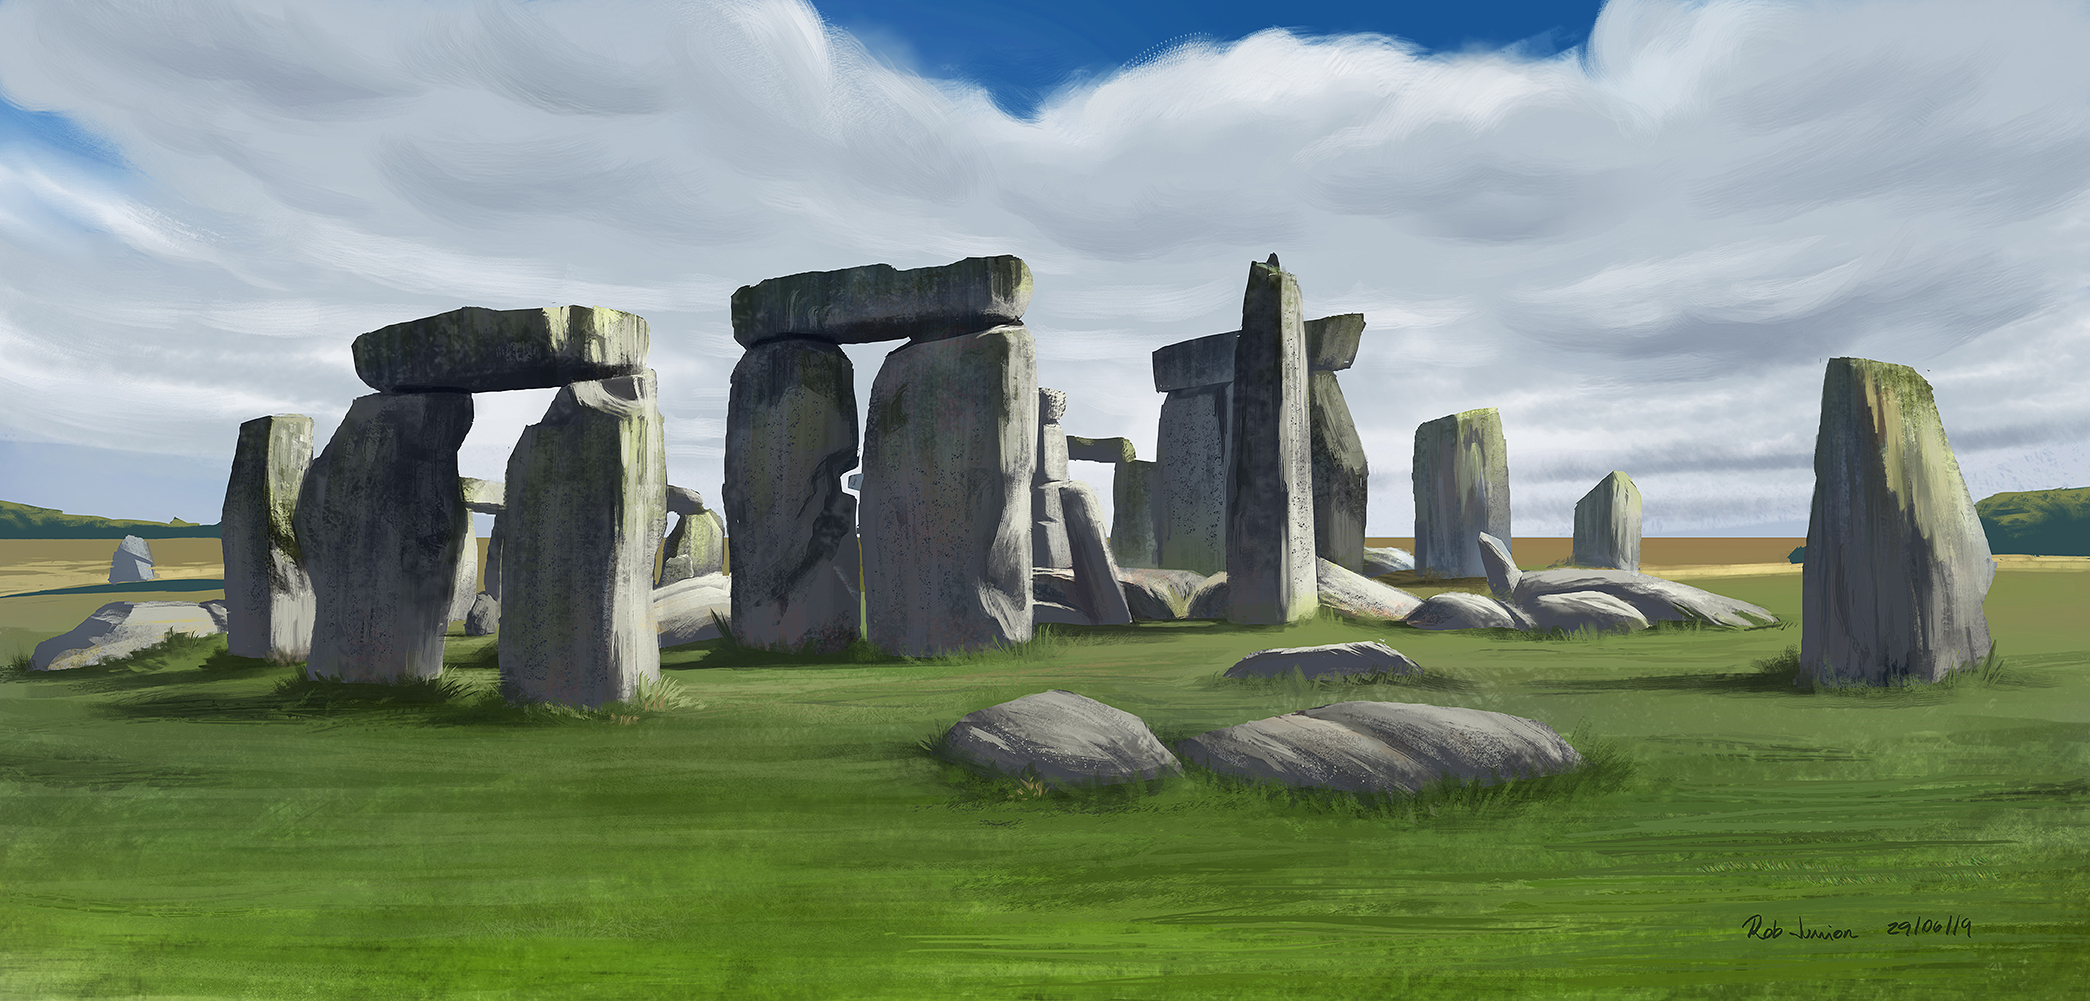 virtualplainair-stonehenge-29-06-19